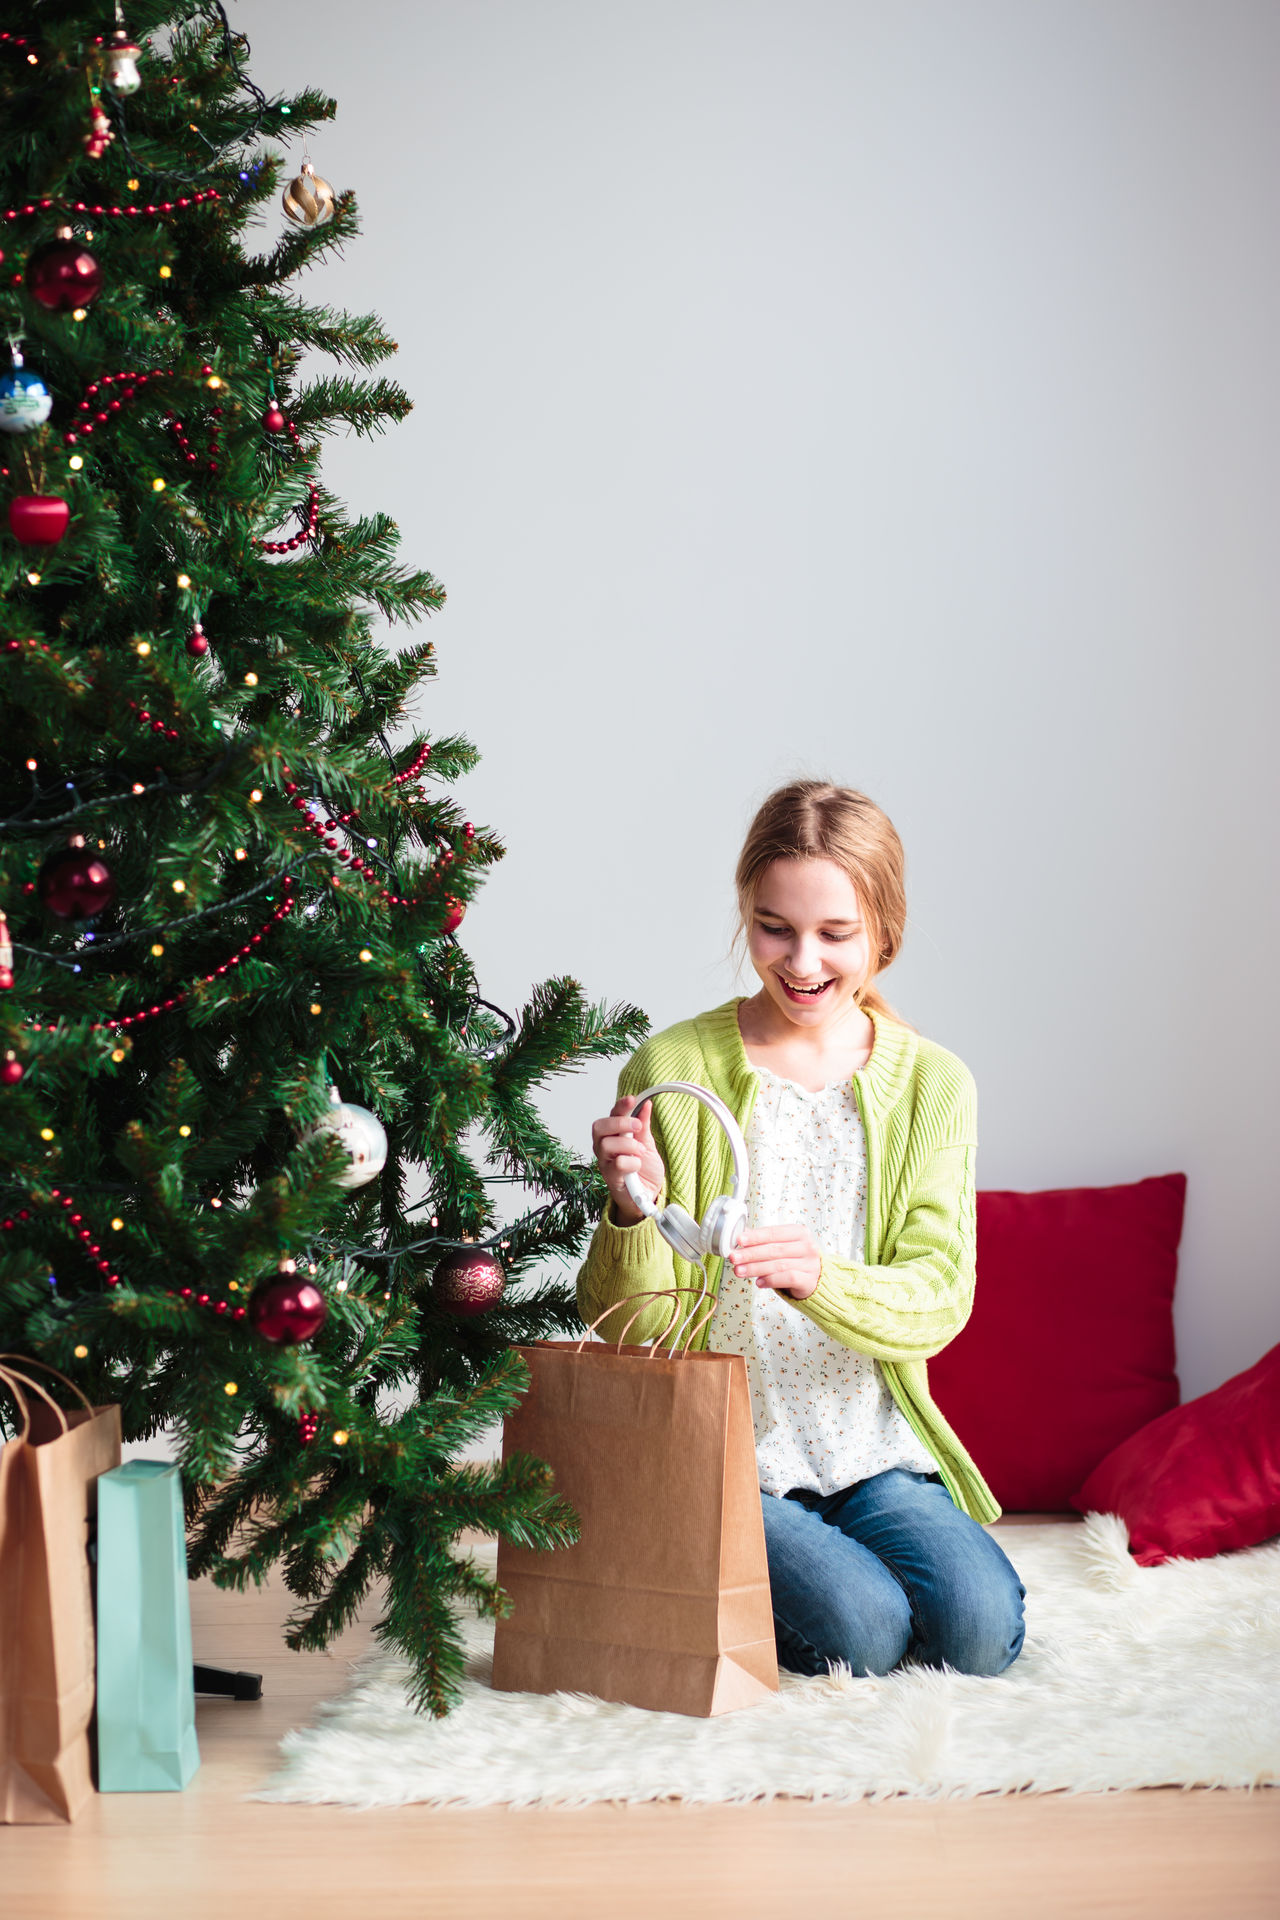 Beautiful stock photos of weihnachtsbaum,  12-13 Years,  At Home,  Blanket,  Blond Hair